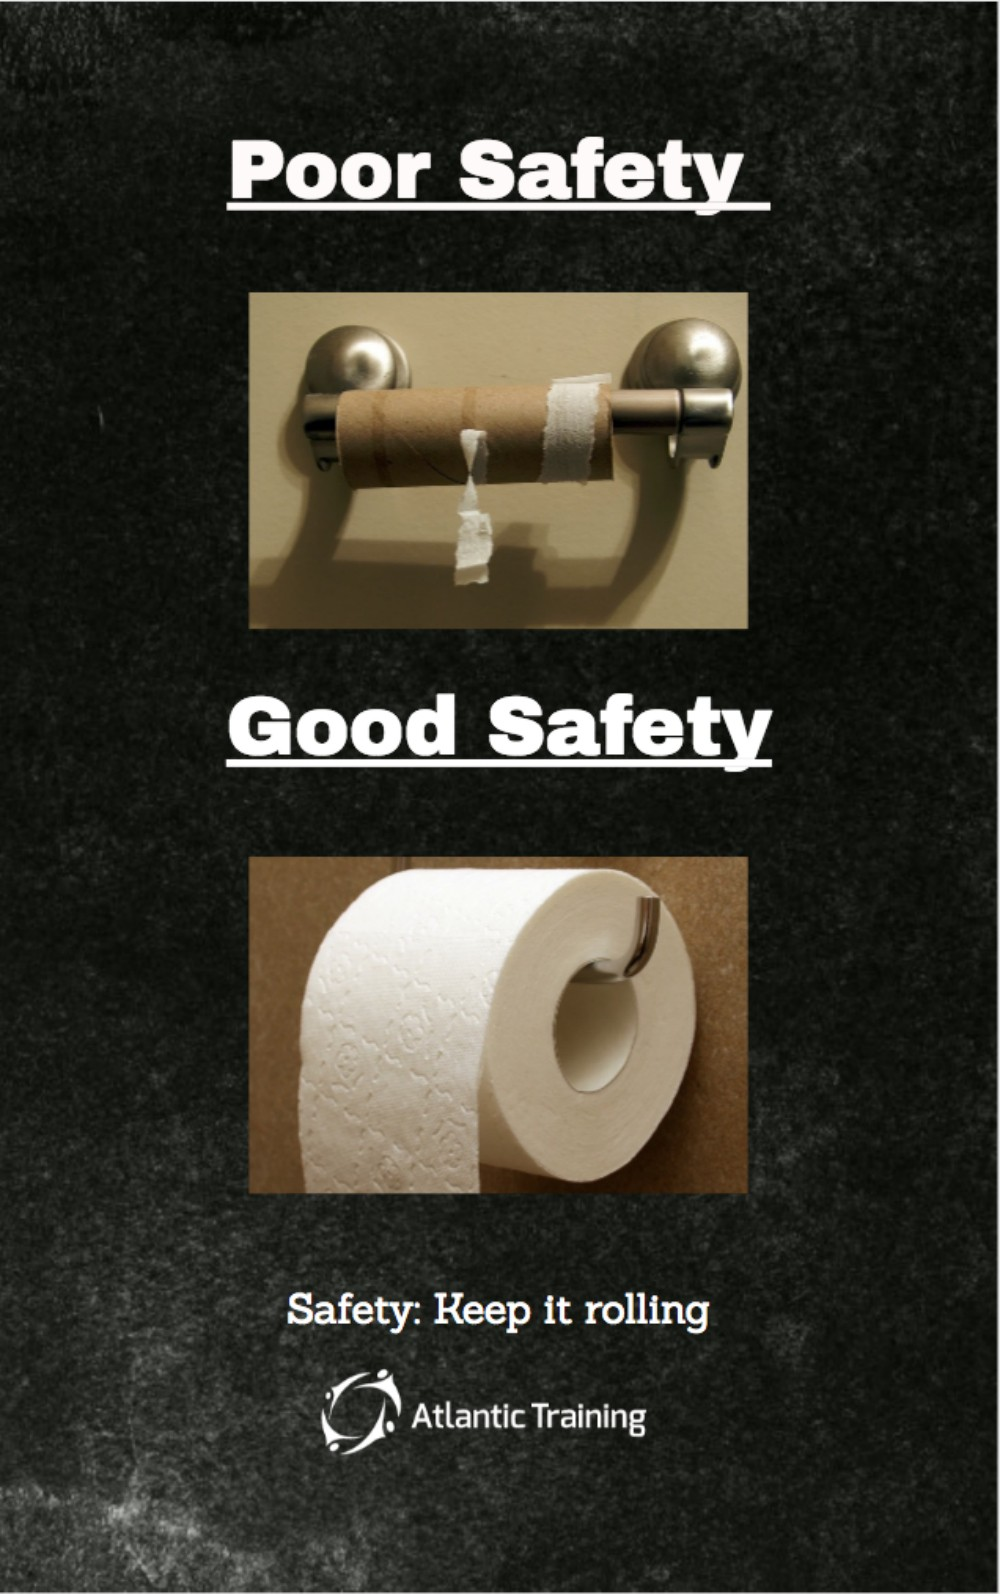 Safety Poster Reminder For Your Workplace Bathroom